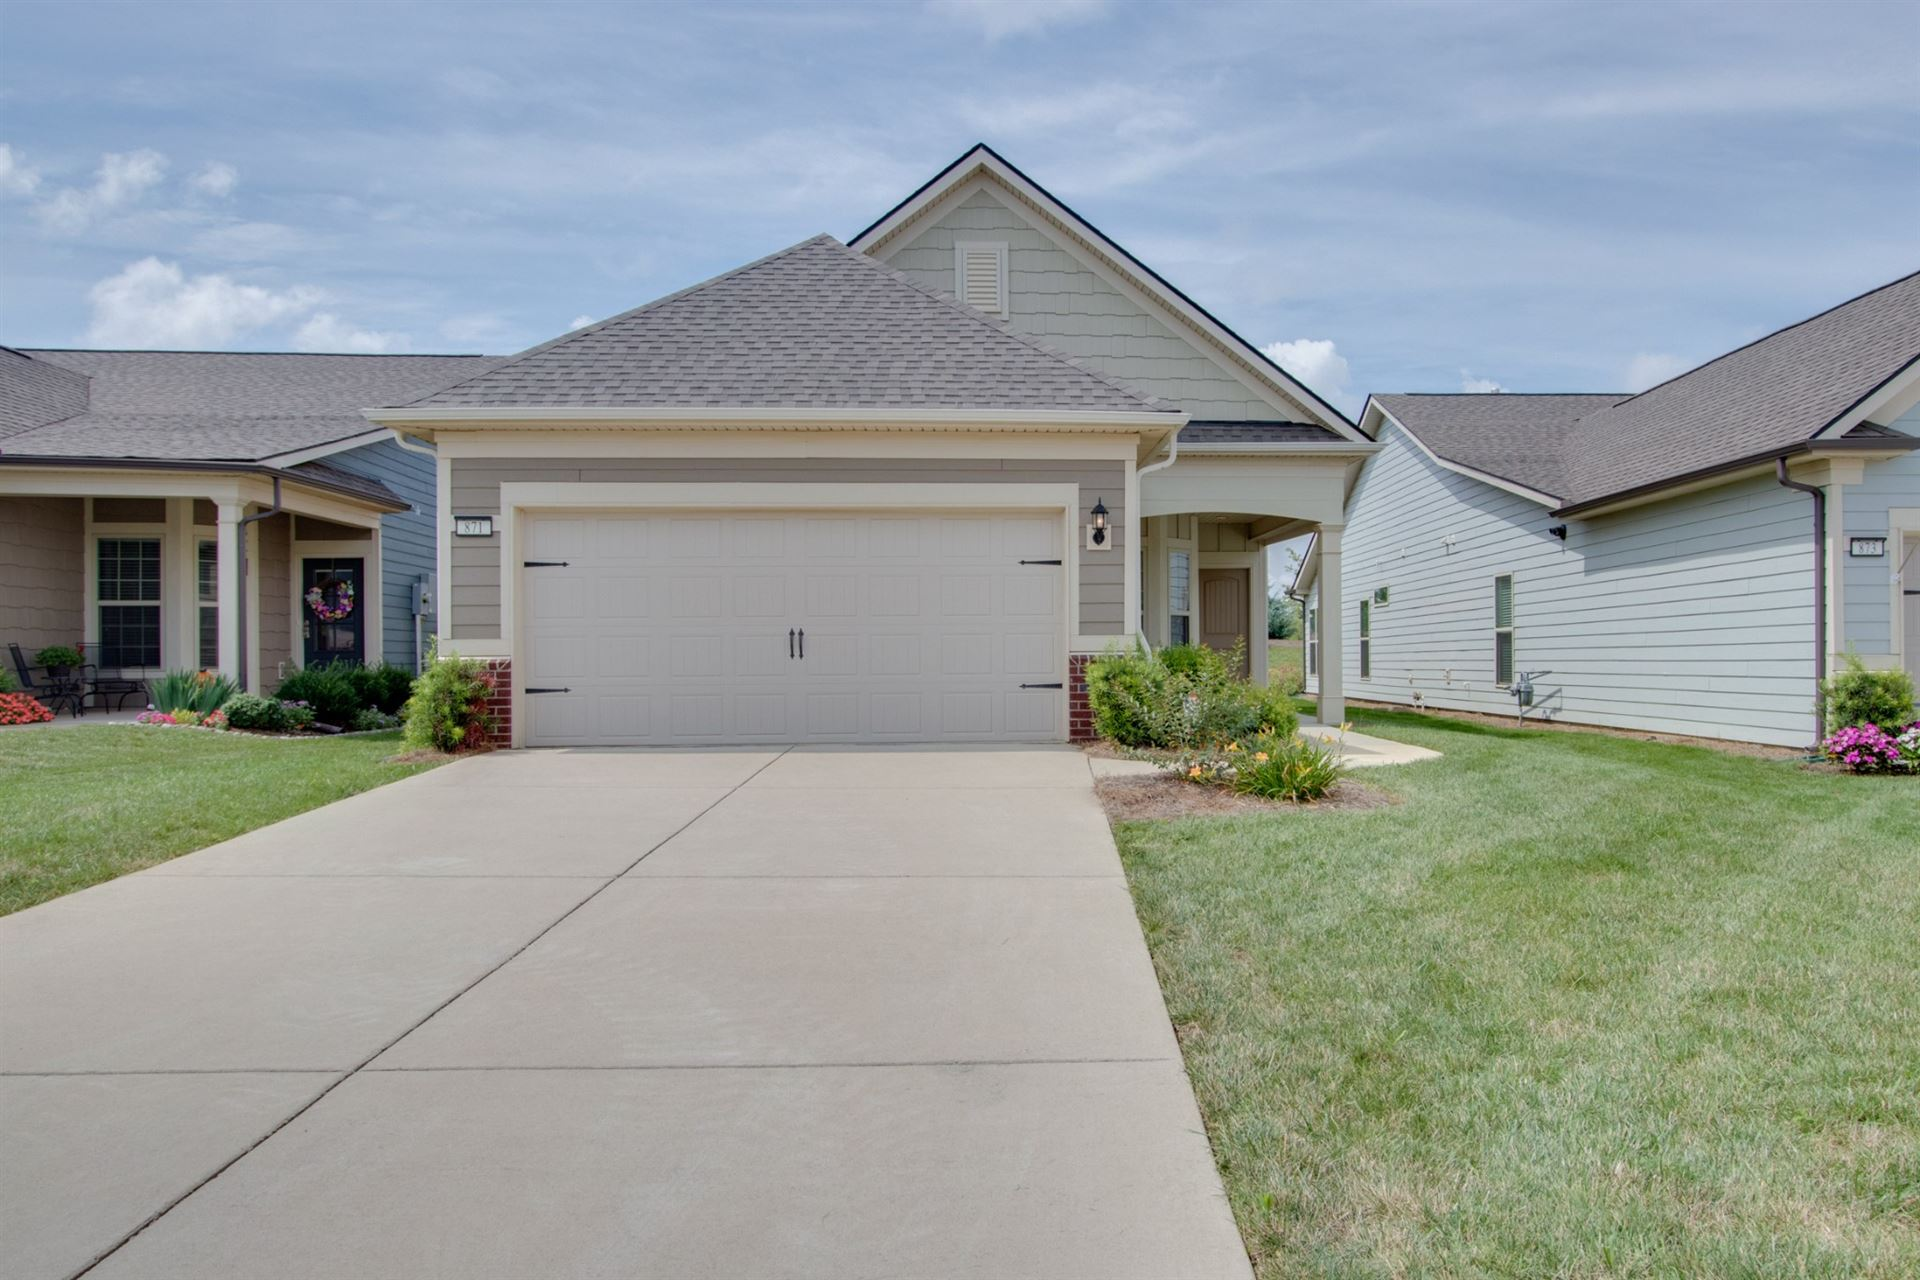 Photo of 871 Clay Pl, Spring Hill, TN 37174 (MLS # 2179507)